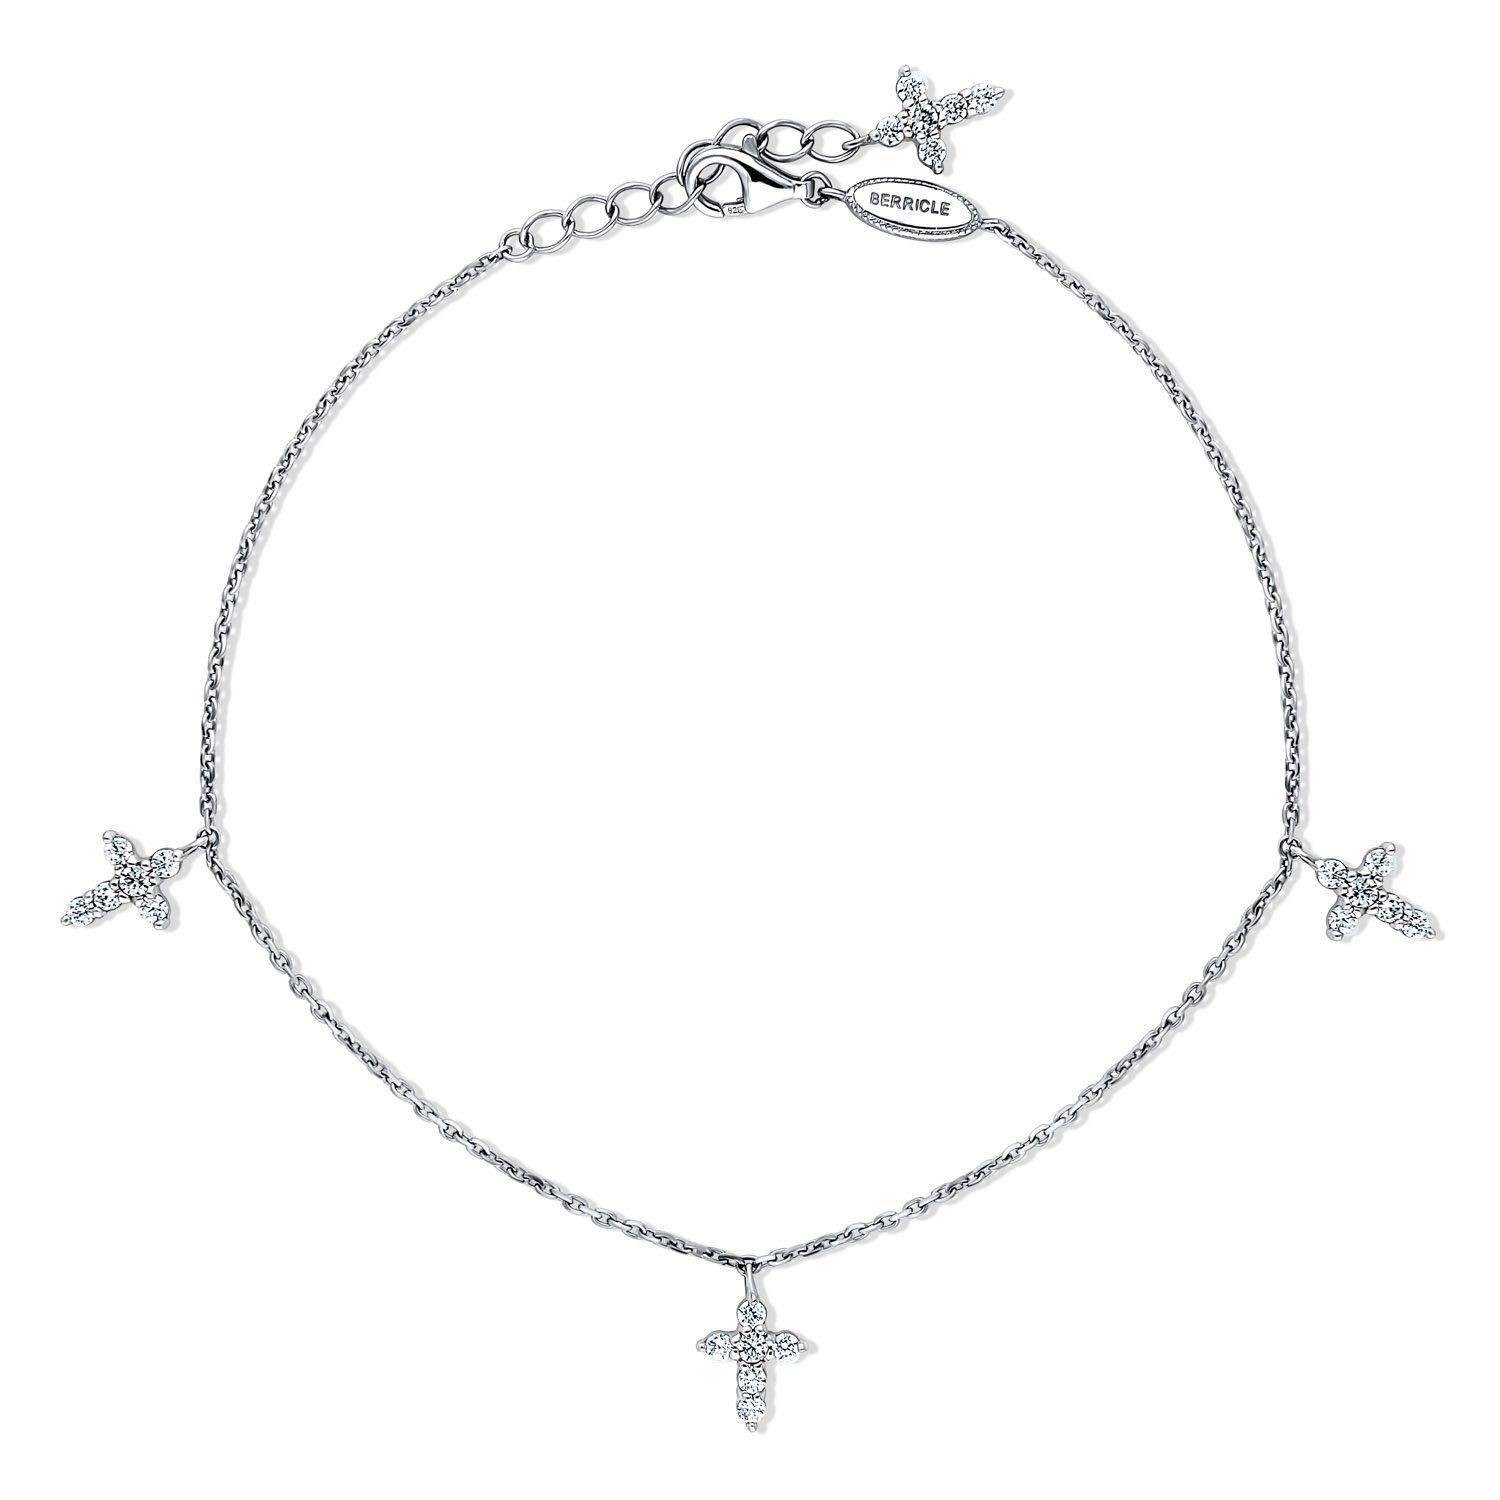 shaped and details adorned expert chain heart anklet with ankle cubic classic by brilliant designed polished a sterling inlays anklets silver crafted is clear hand romantic products clr this zirconia ca bracelet link in